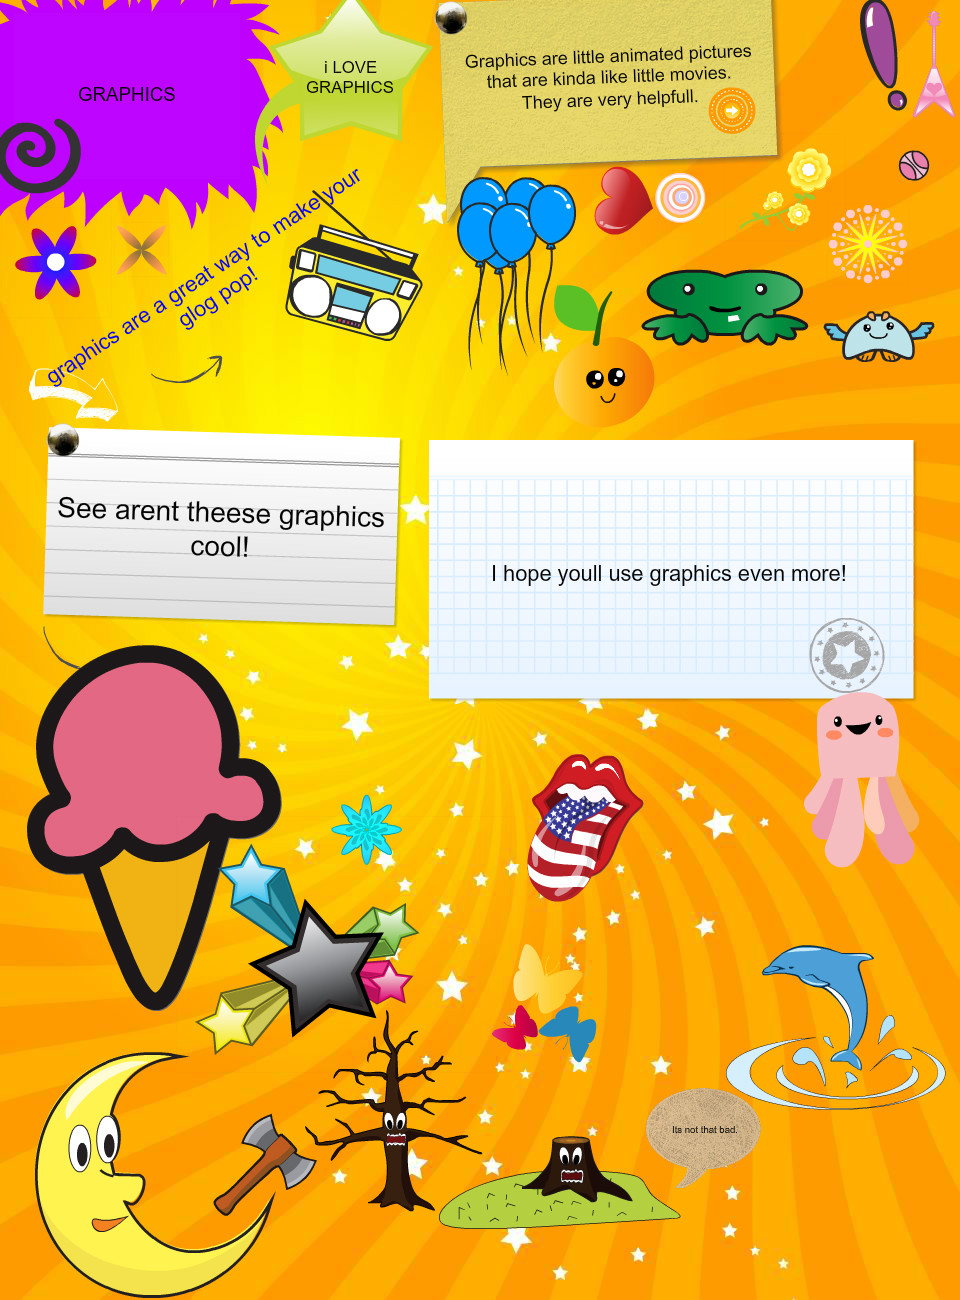 How To Use Graphices        BY: Audrie Burton